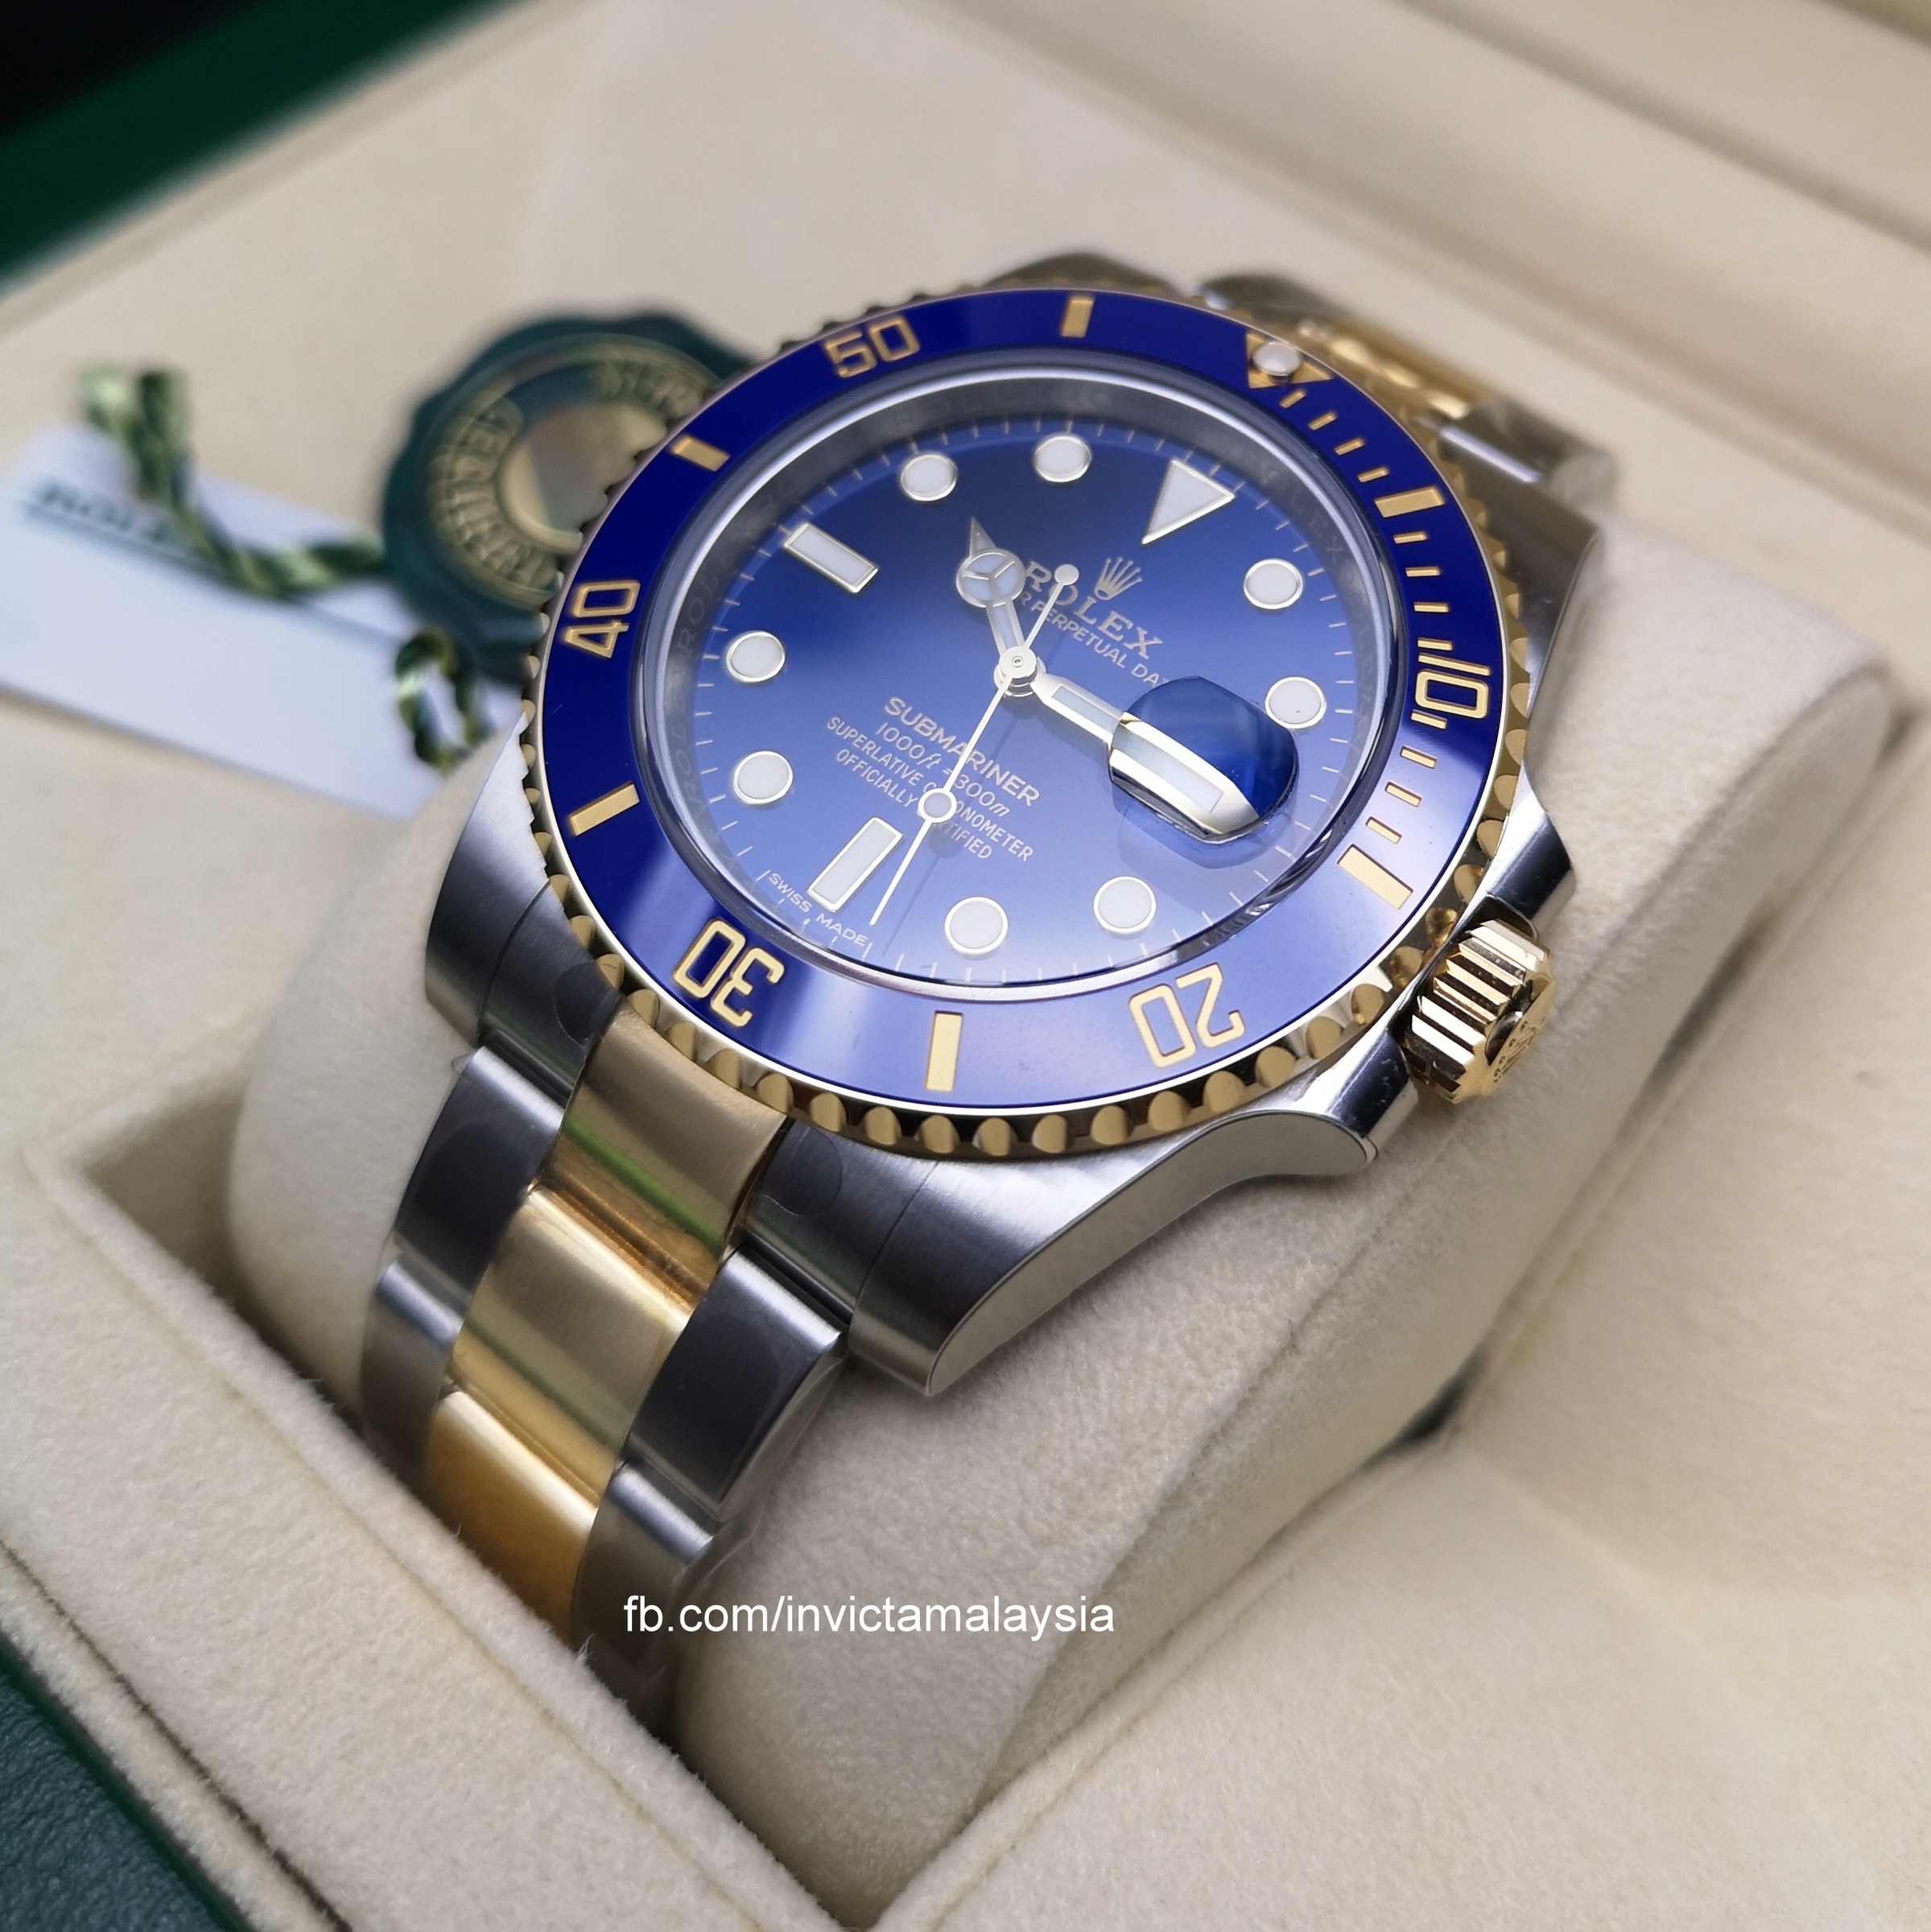 Rolex Submariner Date Two Tone Blue 116613LB